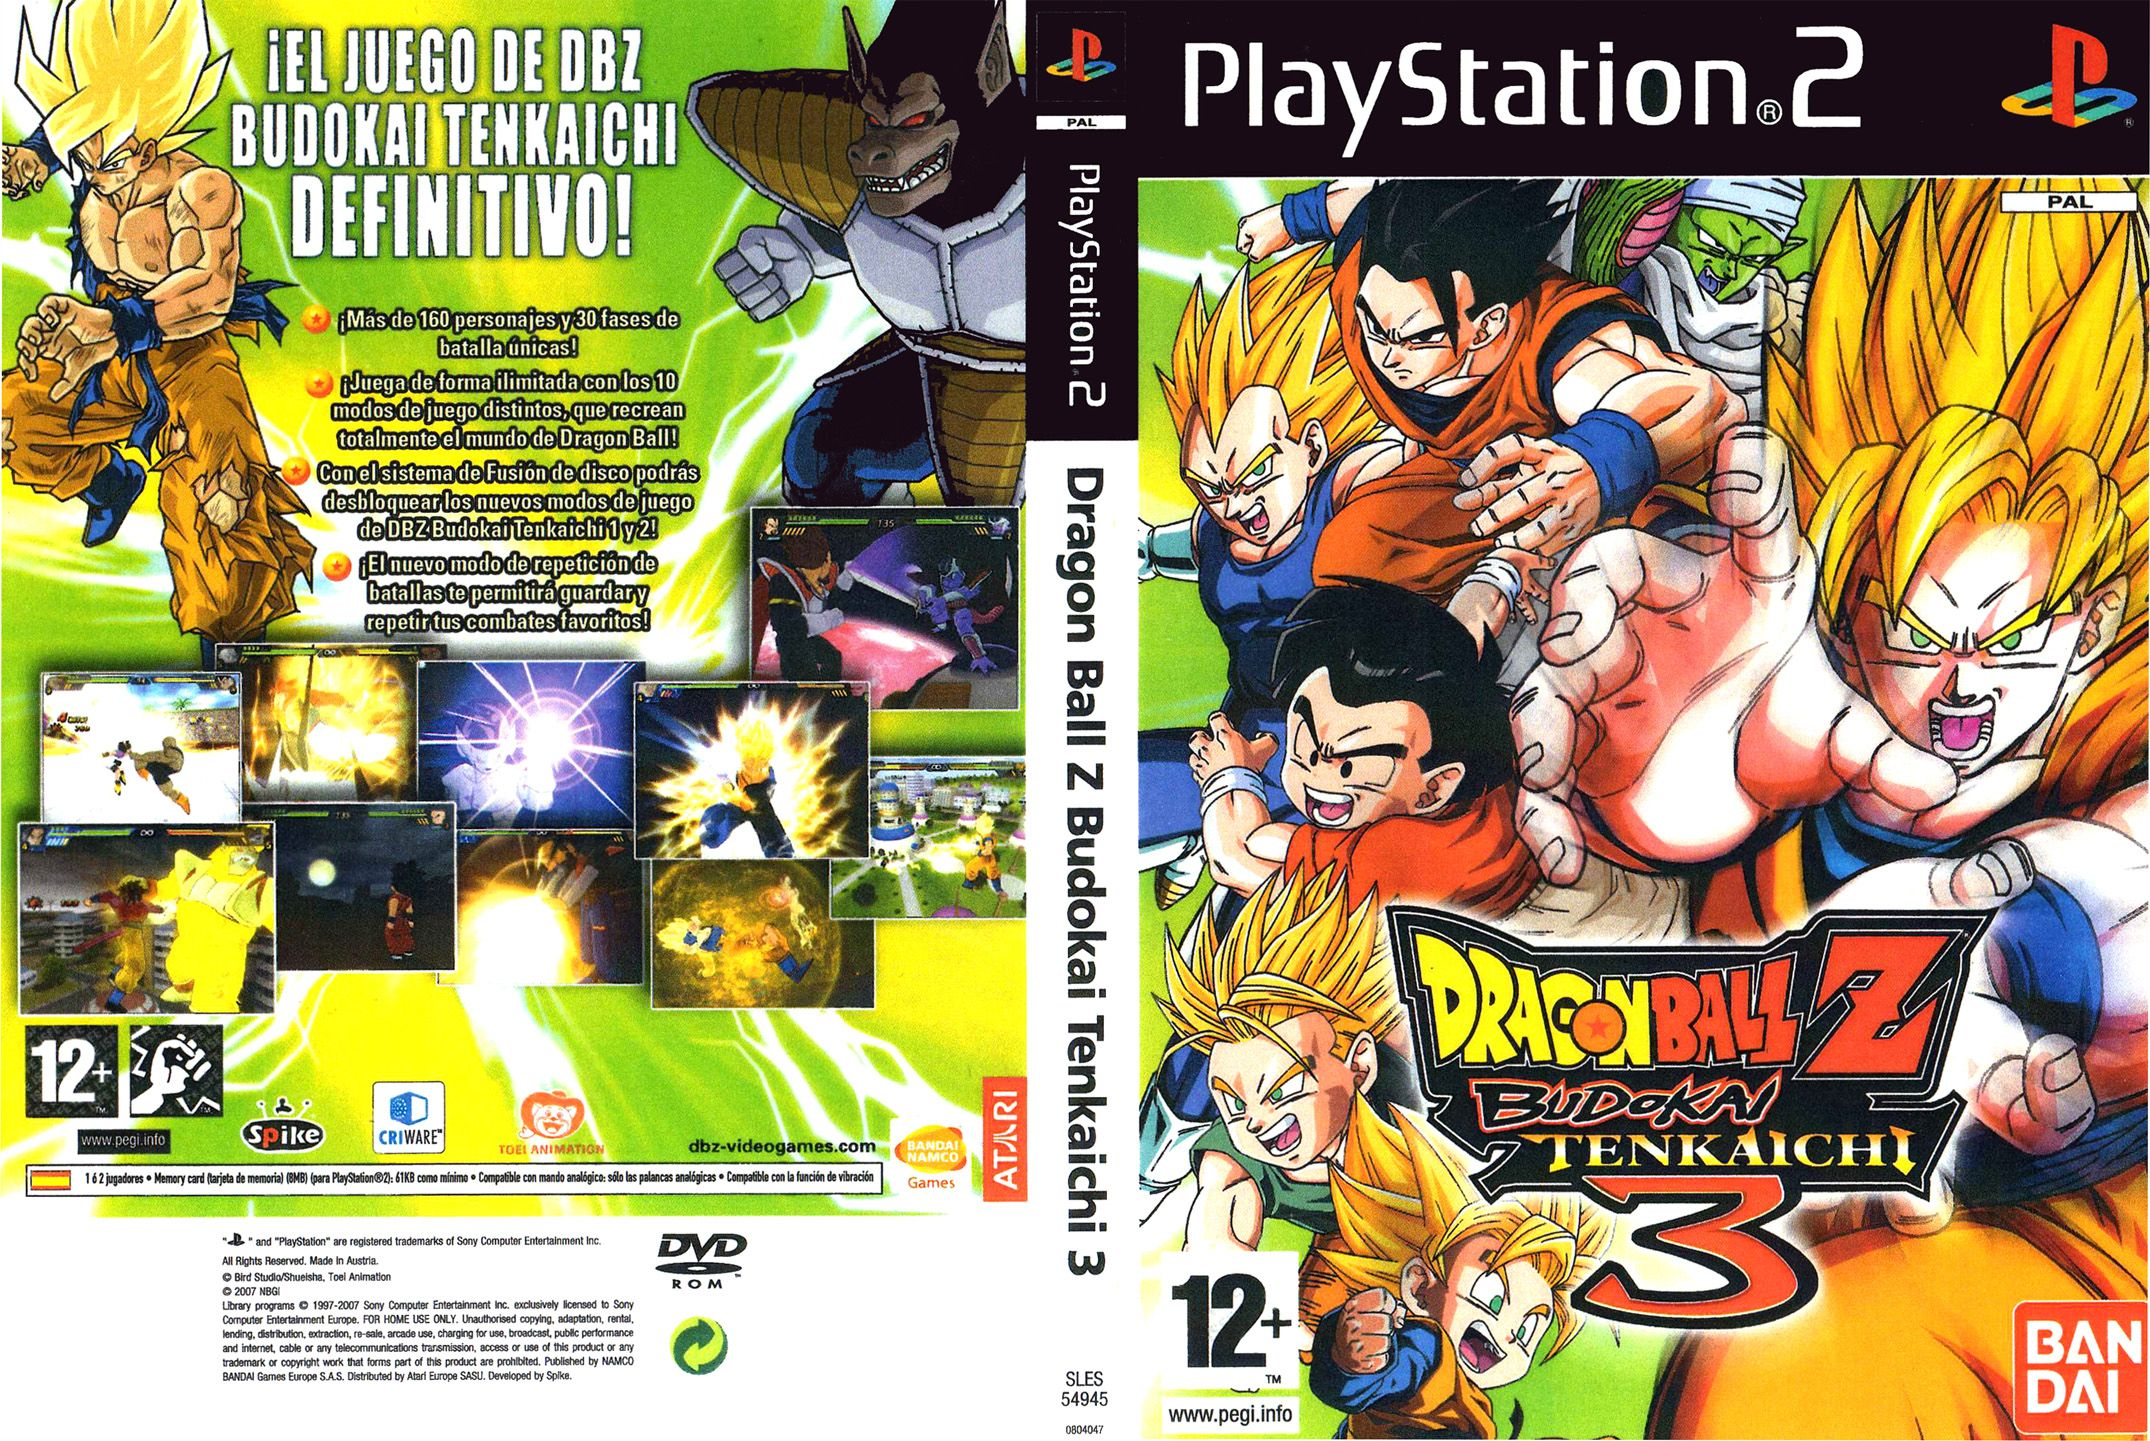 Dragon Ball Z Budokai Tenkaichi 3 Version Latino Ps2